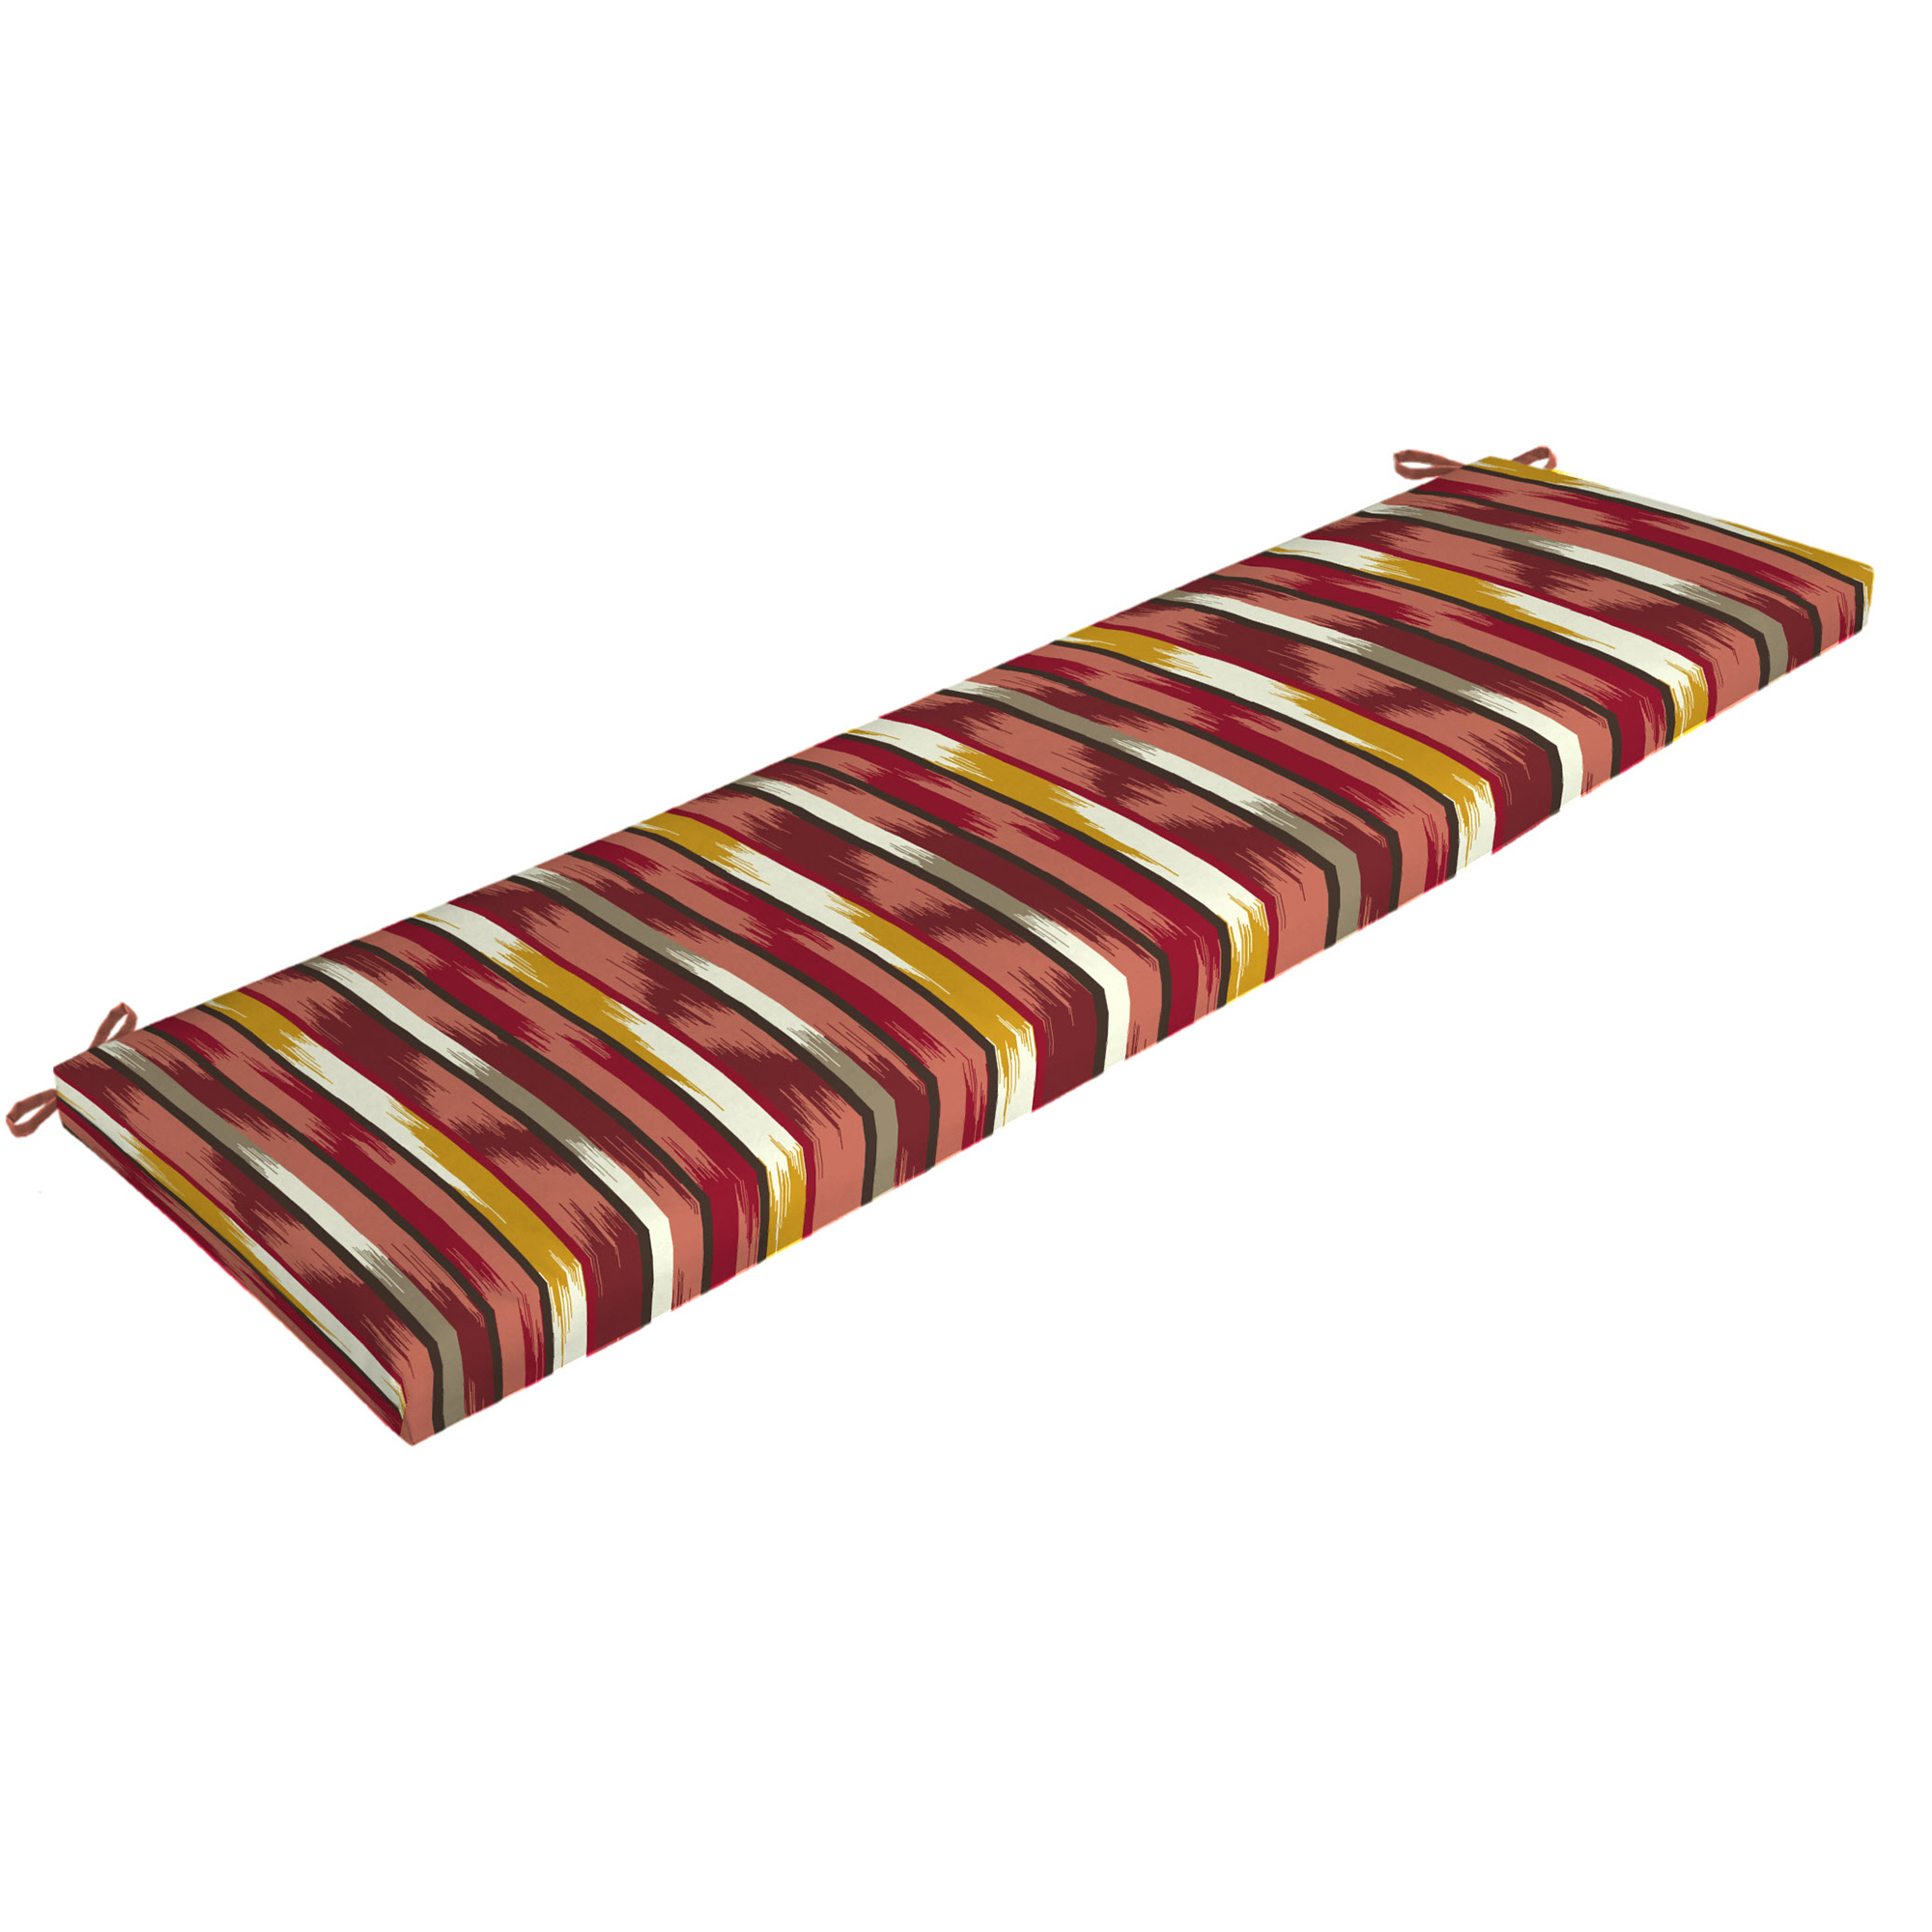 Mainstays Santa Fe Stripe Red Outdoor Patio Bench Cushion, 46 in. W x 17 in. D x 3 in. H